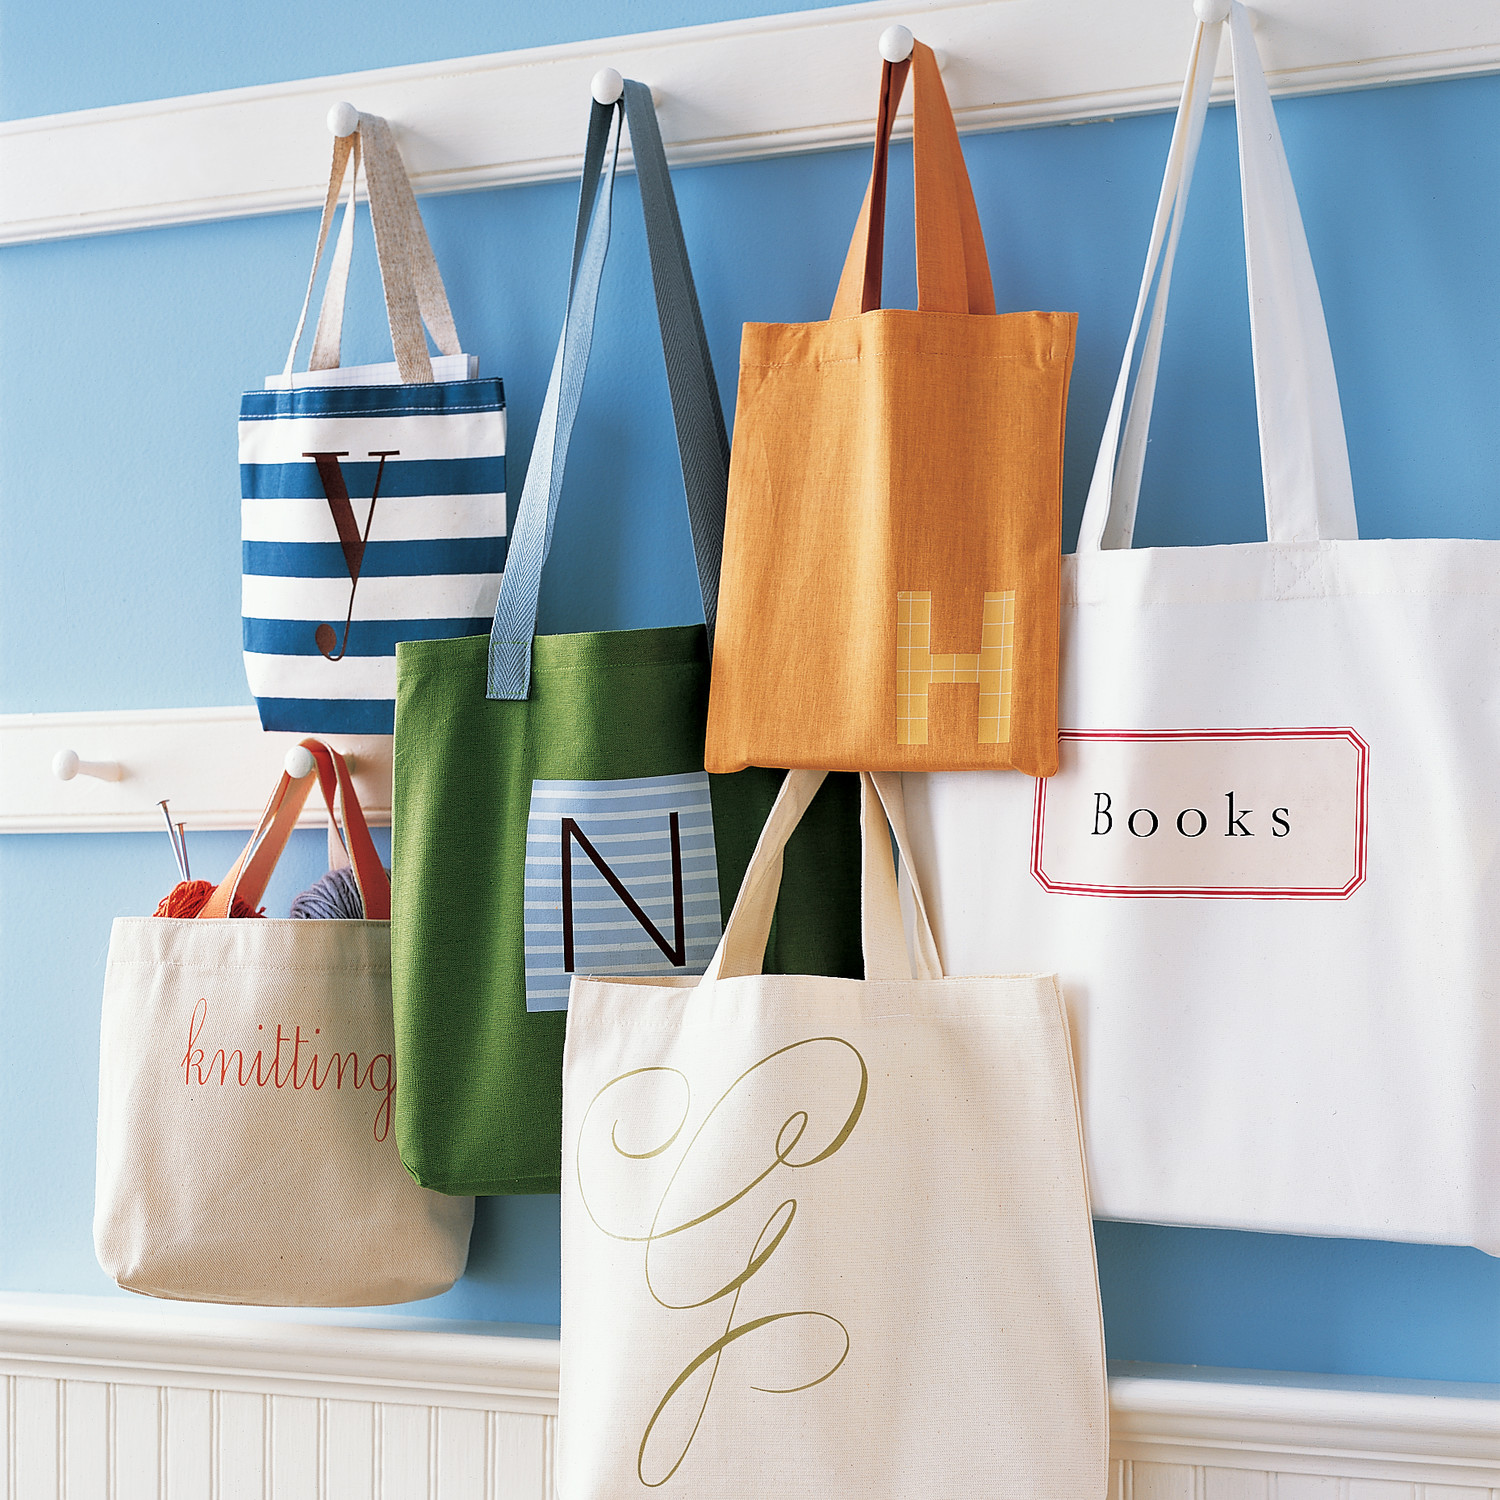 Handmade Tote Bags | Martha Stewart on homemade toys, homemade dolls, homemade makeup, homemade slippers, homemade pottery, homemade purse patterns, homemade cloth purses, homemade denim purses, homemade pants, homemade art, homemade purse ideas, homemade socks, homemade scarf, homemade leather purses, homemade gloves, homemade wallets, homemade quilted purses, homemade aprons,